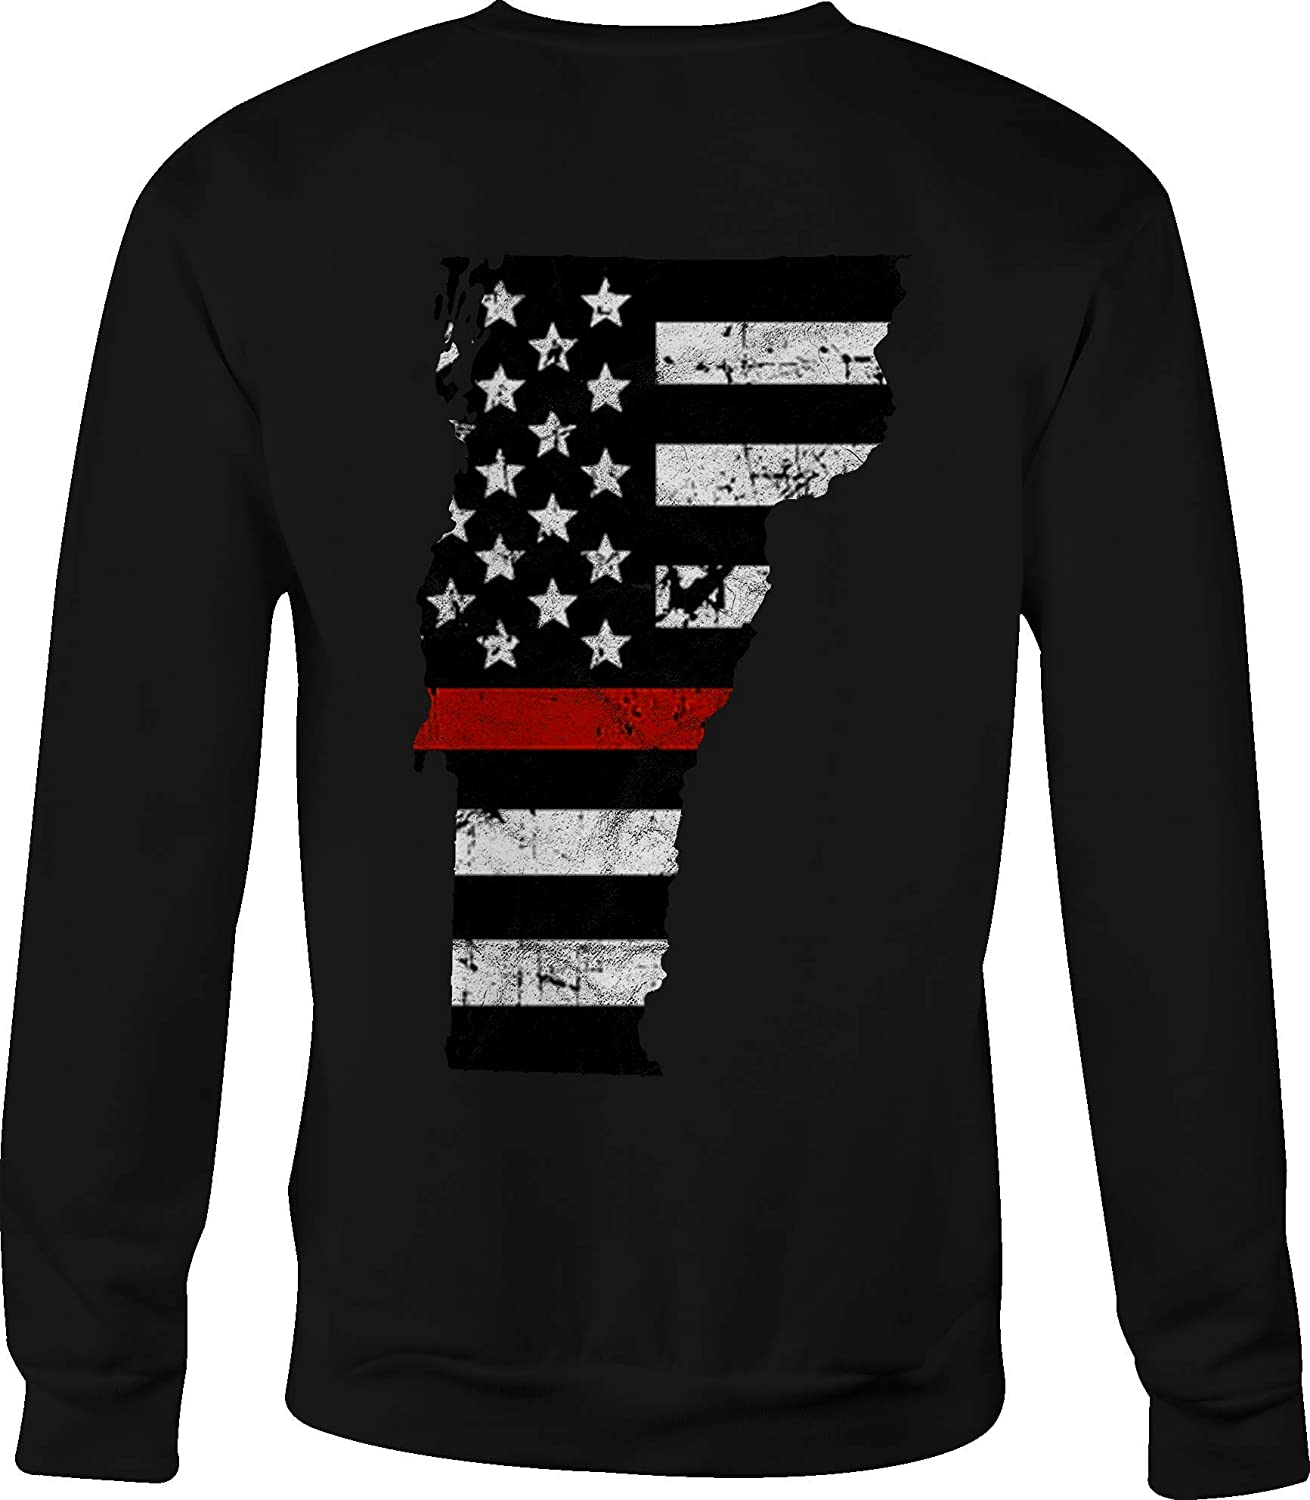 Hoody Crewneck Sweatshirt Vermont Thin Blue Line Distressed American Flag